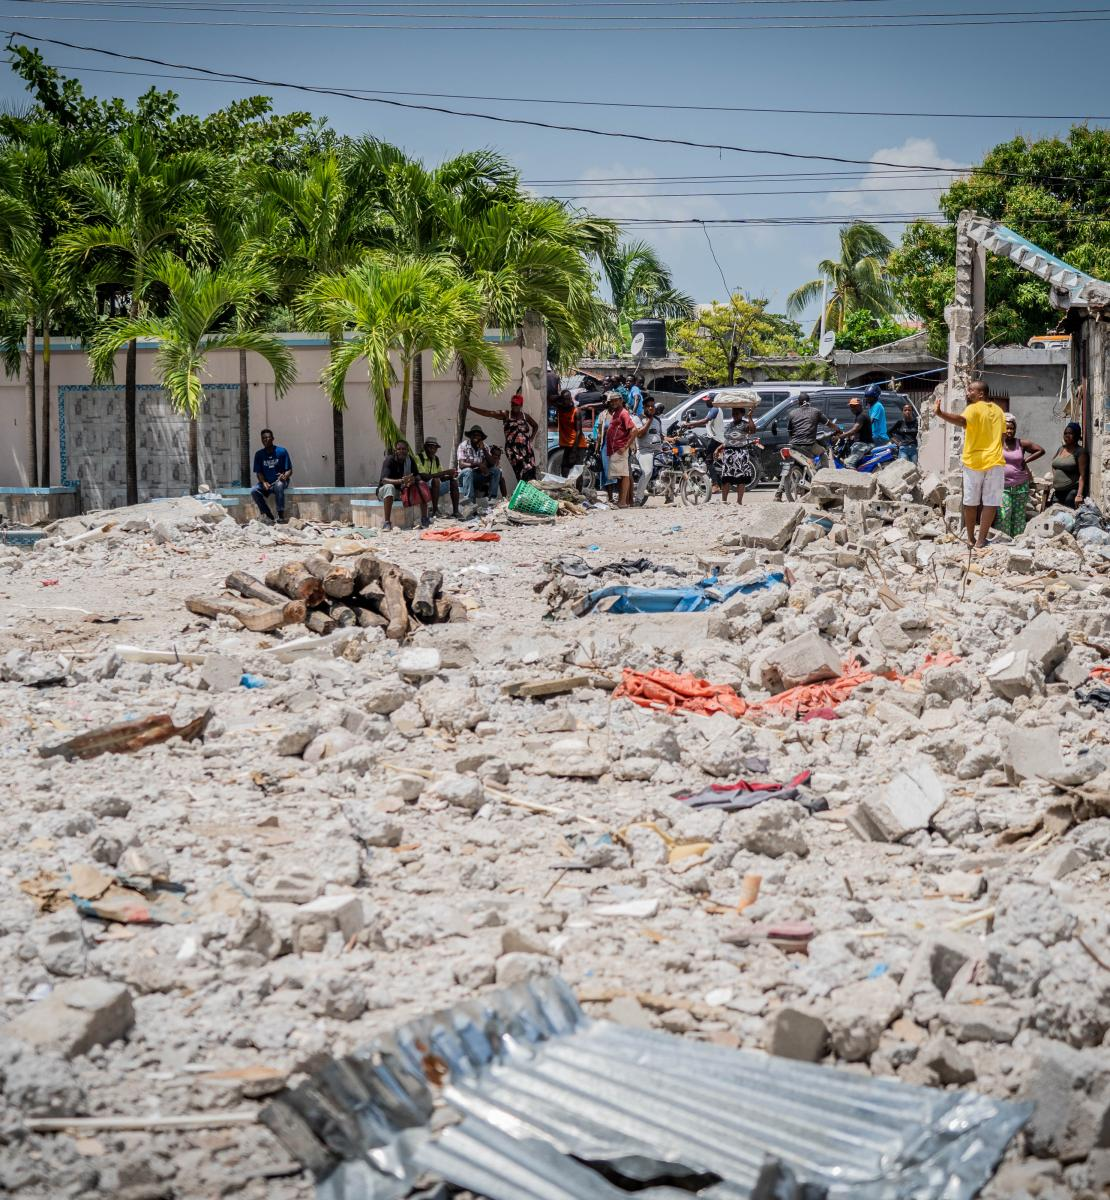 The rubble of where Le Manguier Hotel used to stand in Les Cayes. UNOCHA/Matteo Minasi